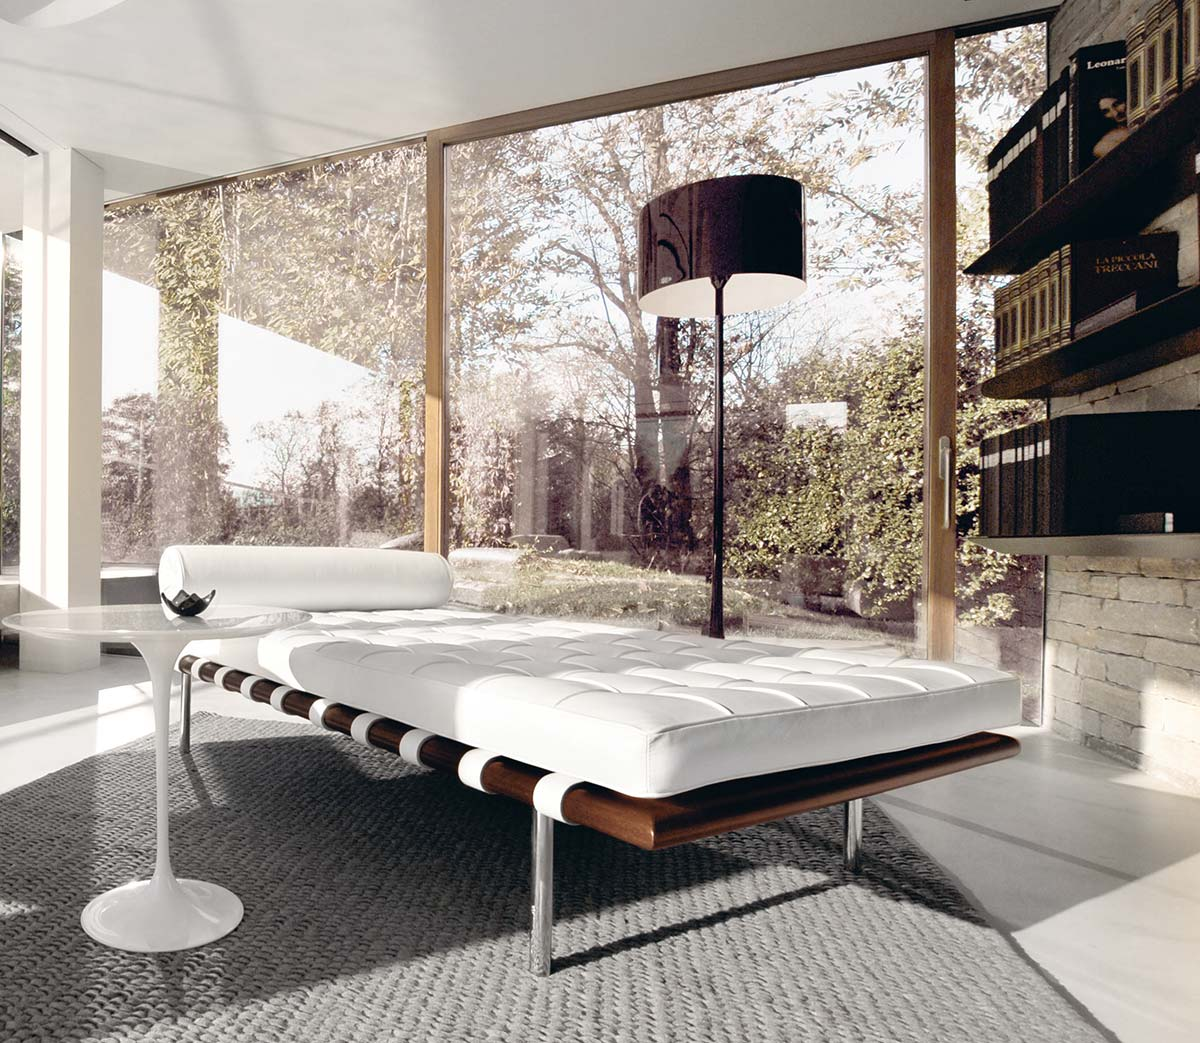 Day bed Barcelona® by Mies van der Rohe